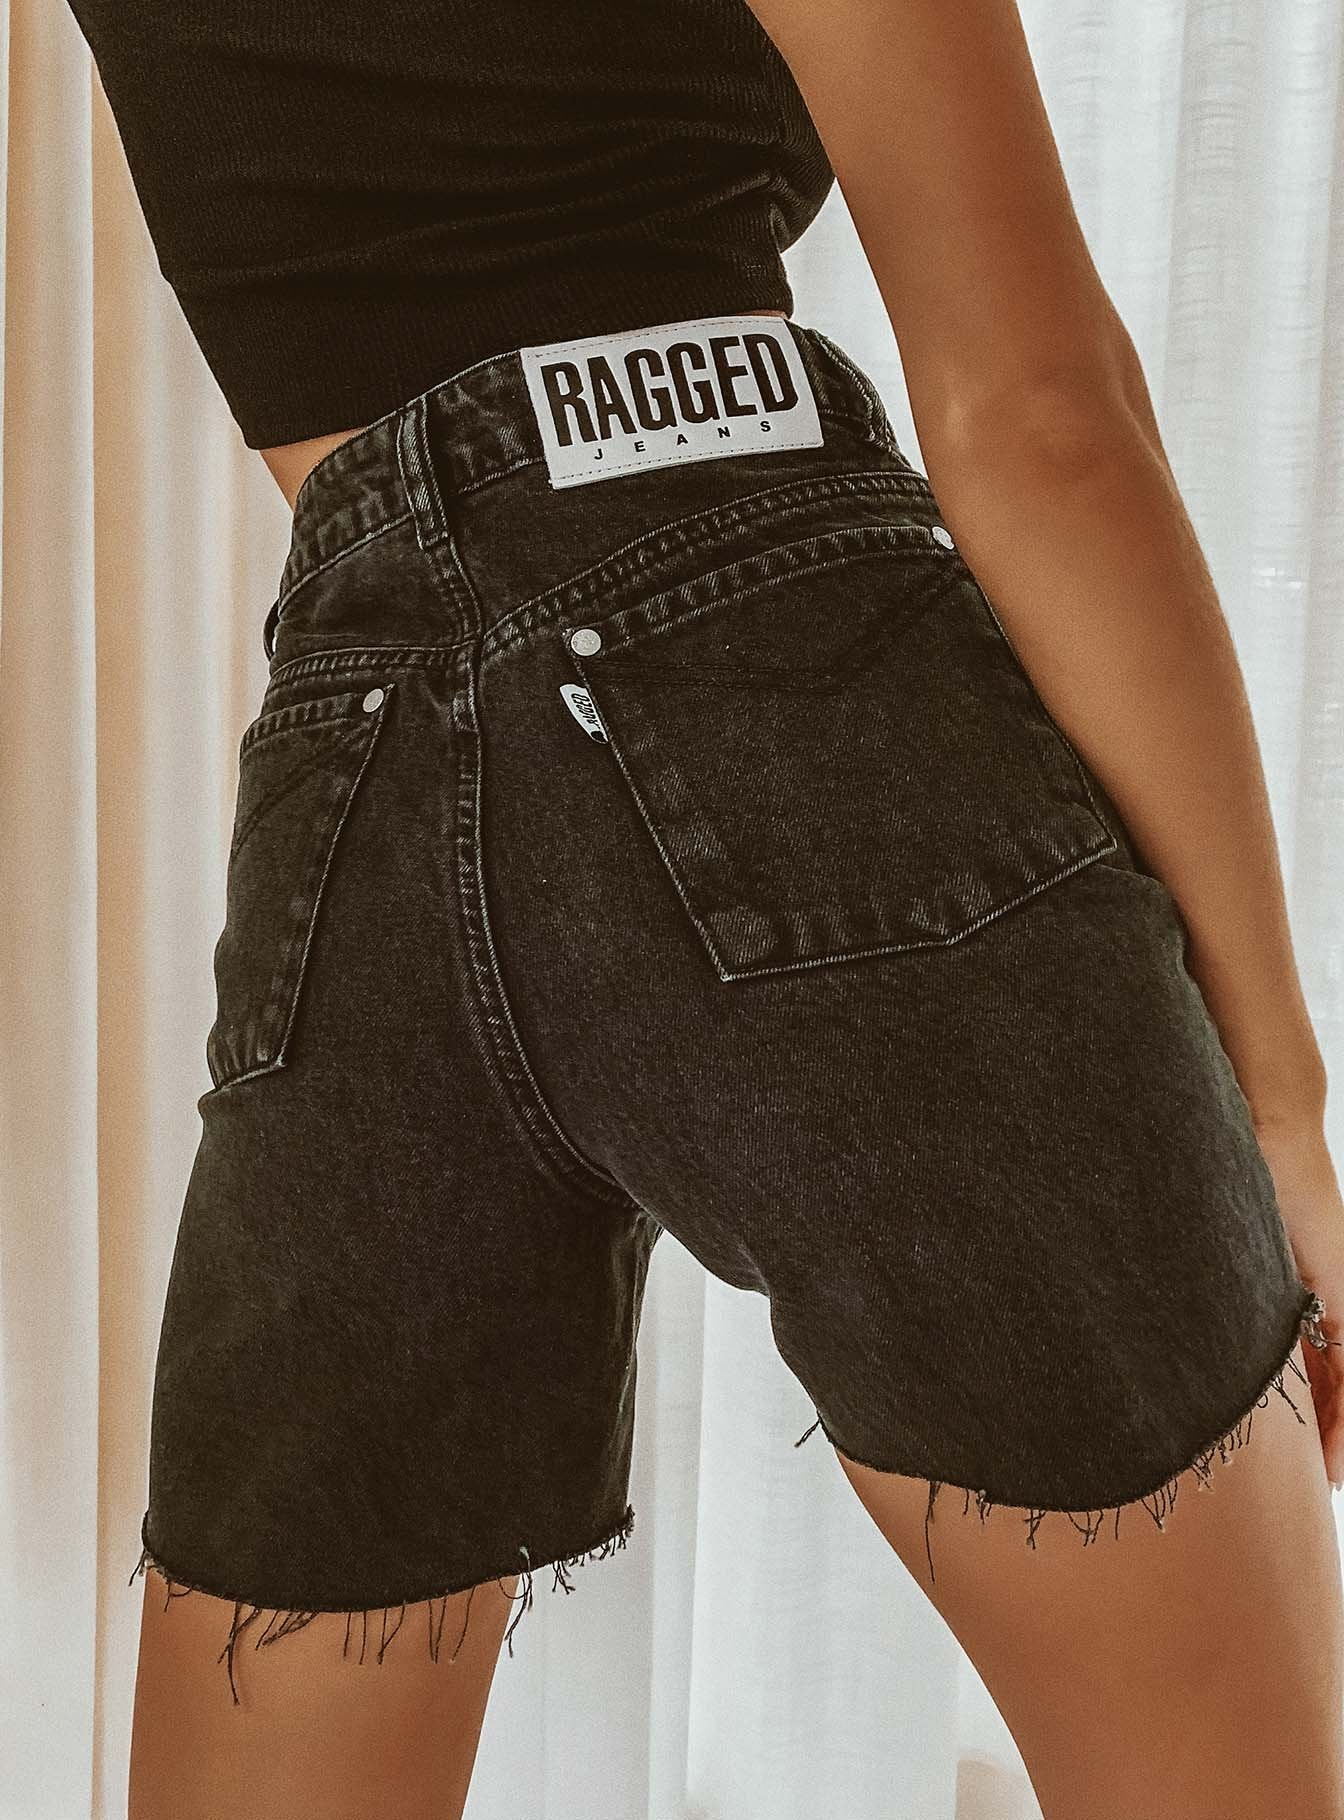 The Ragged Priest Denim Cut Off Mom Shorts Charcoal